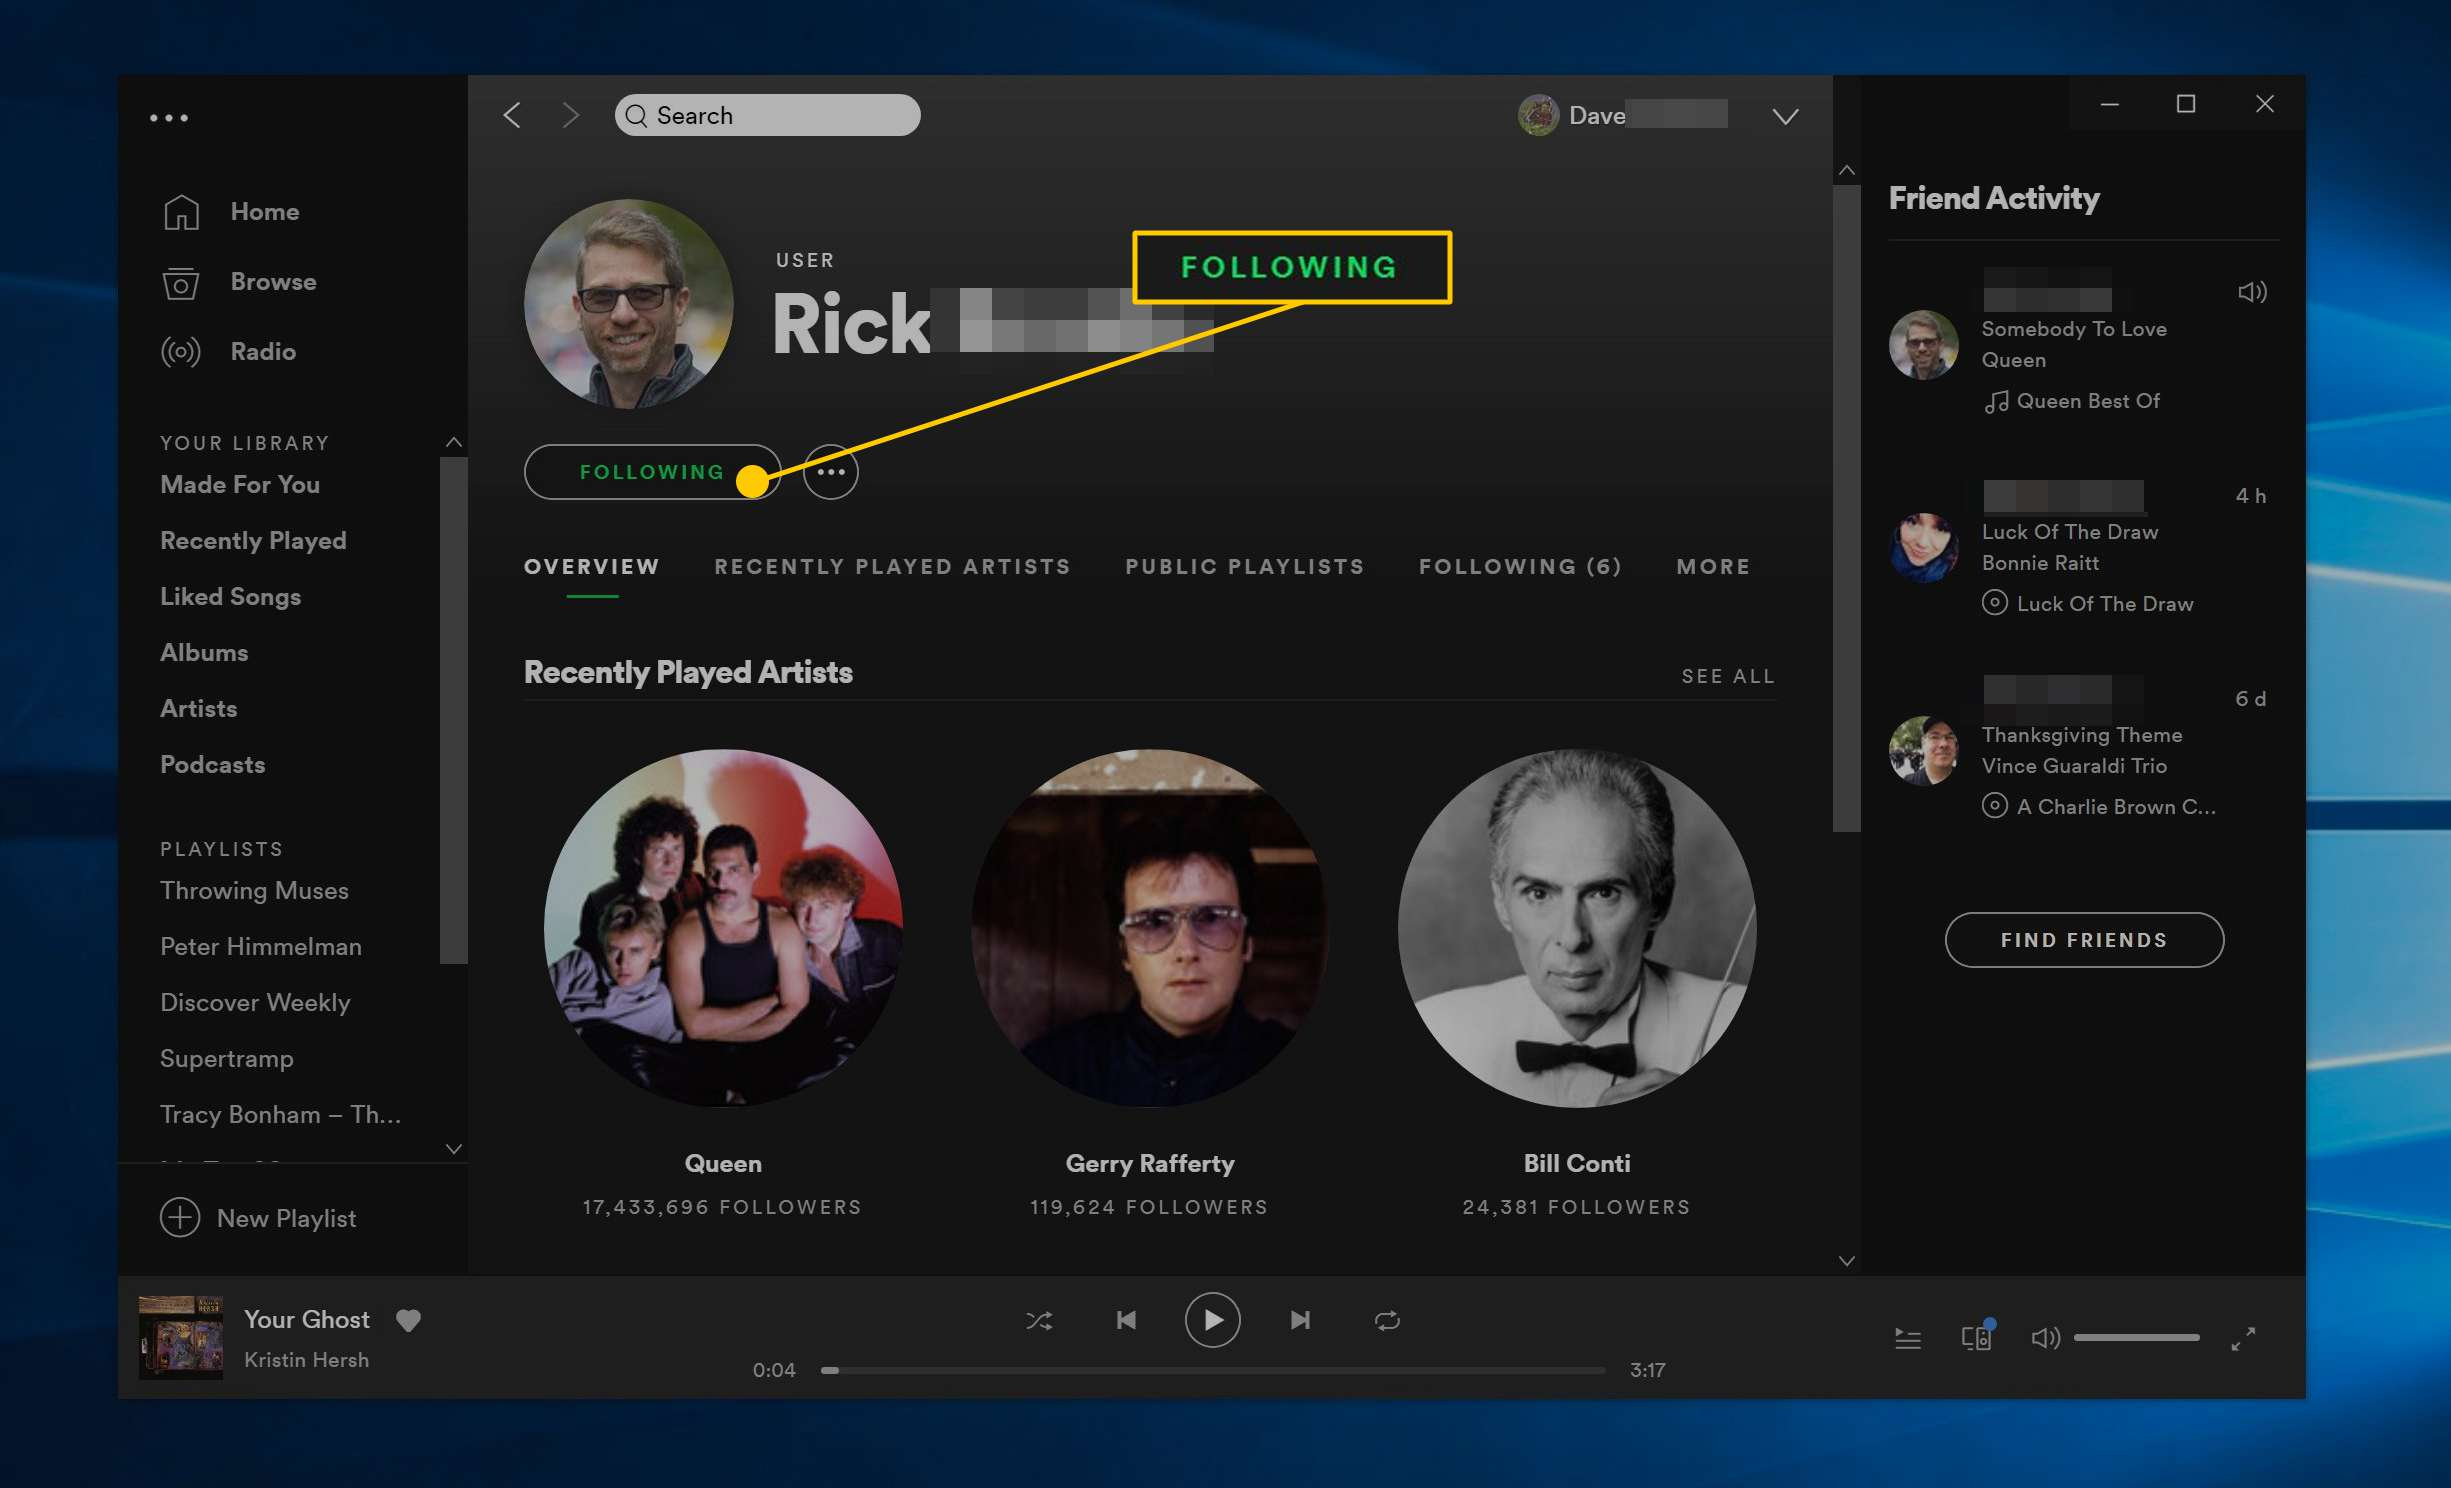 Following button in Spotify